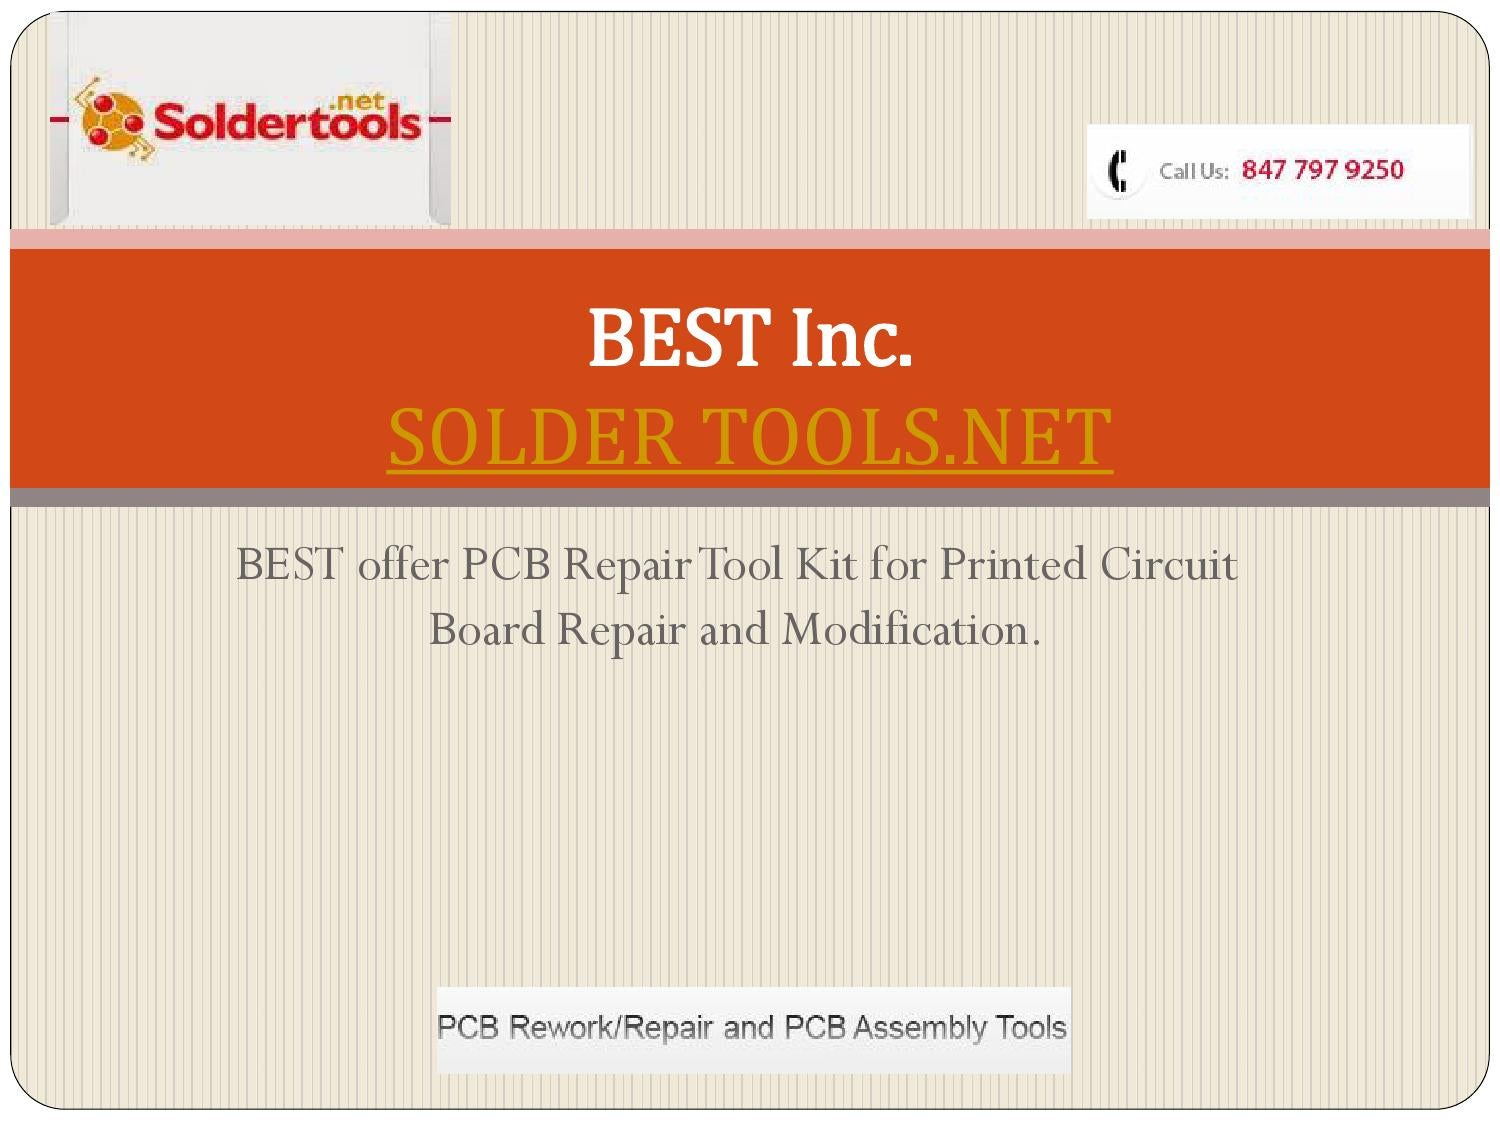 Best Inc | PCB Repair Tool Kits by BEST Inc - issuu